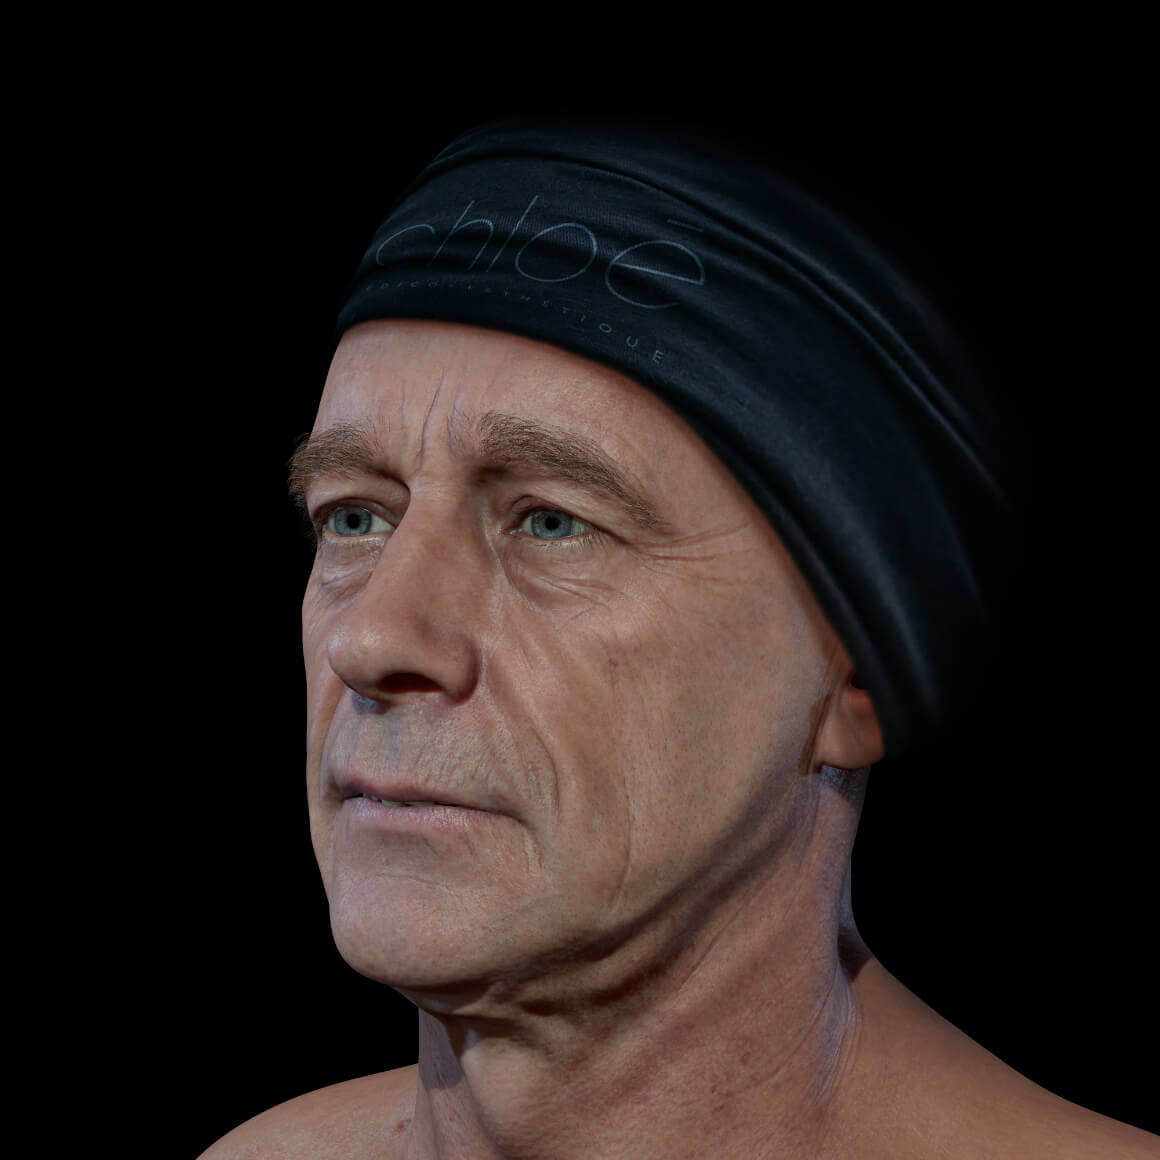 Male patient at Clinique Chloé positioned at an angle showing deep wrinkles on his face